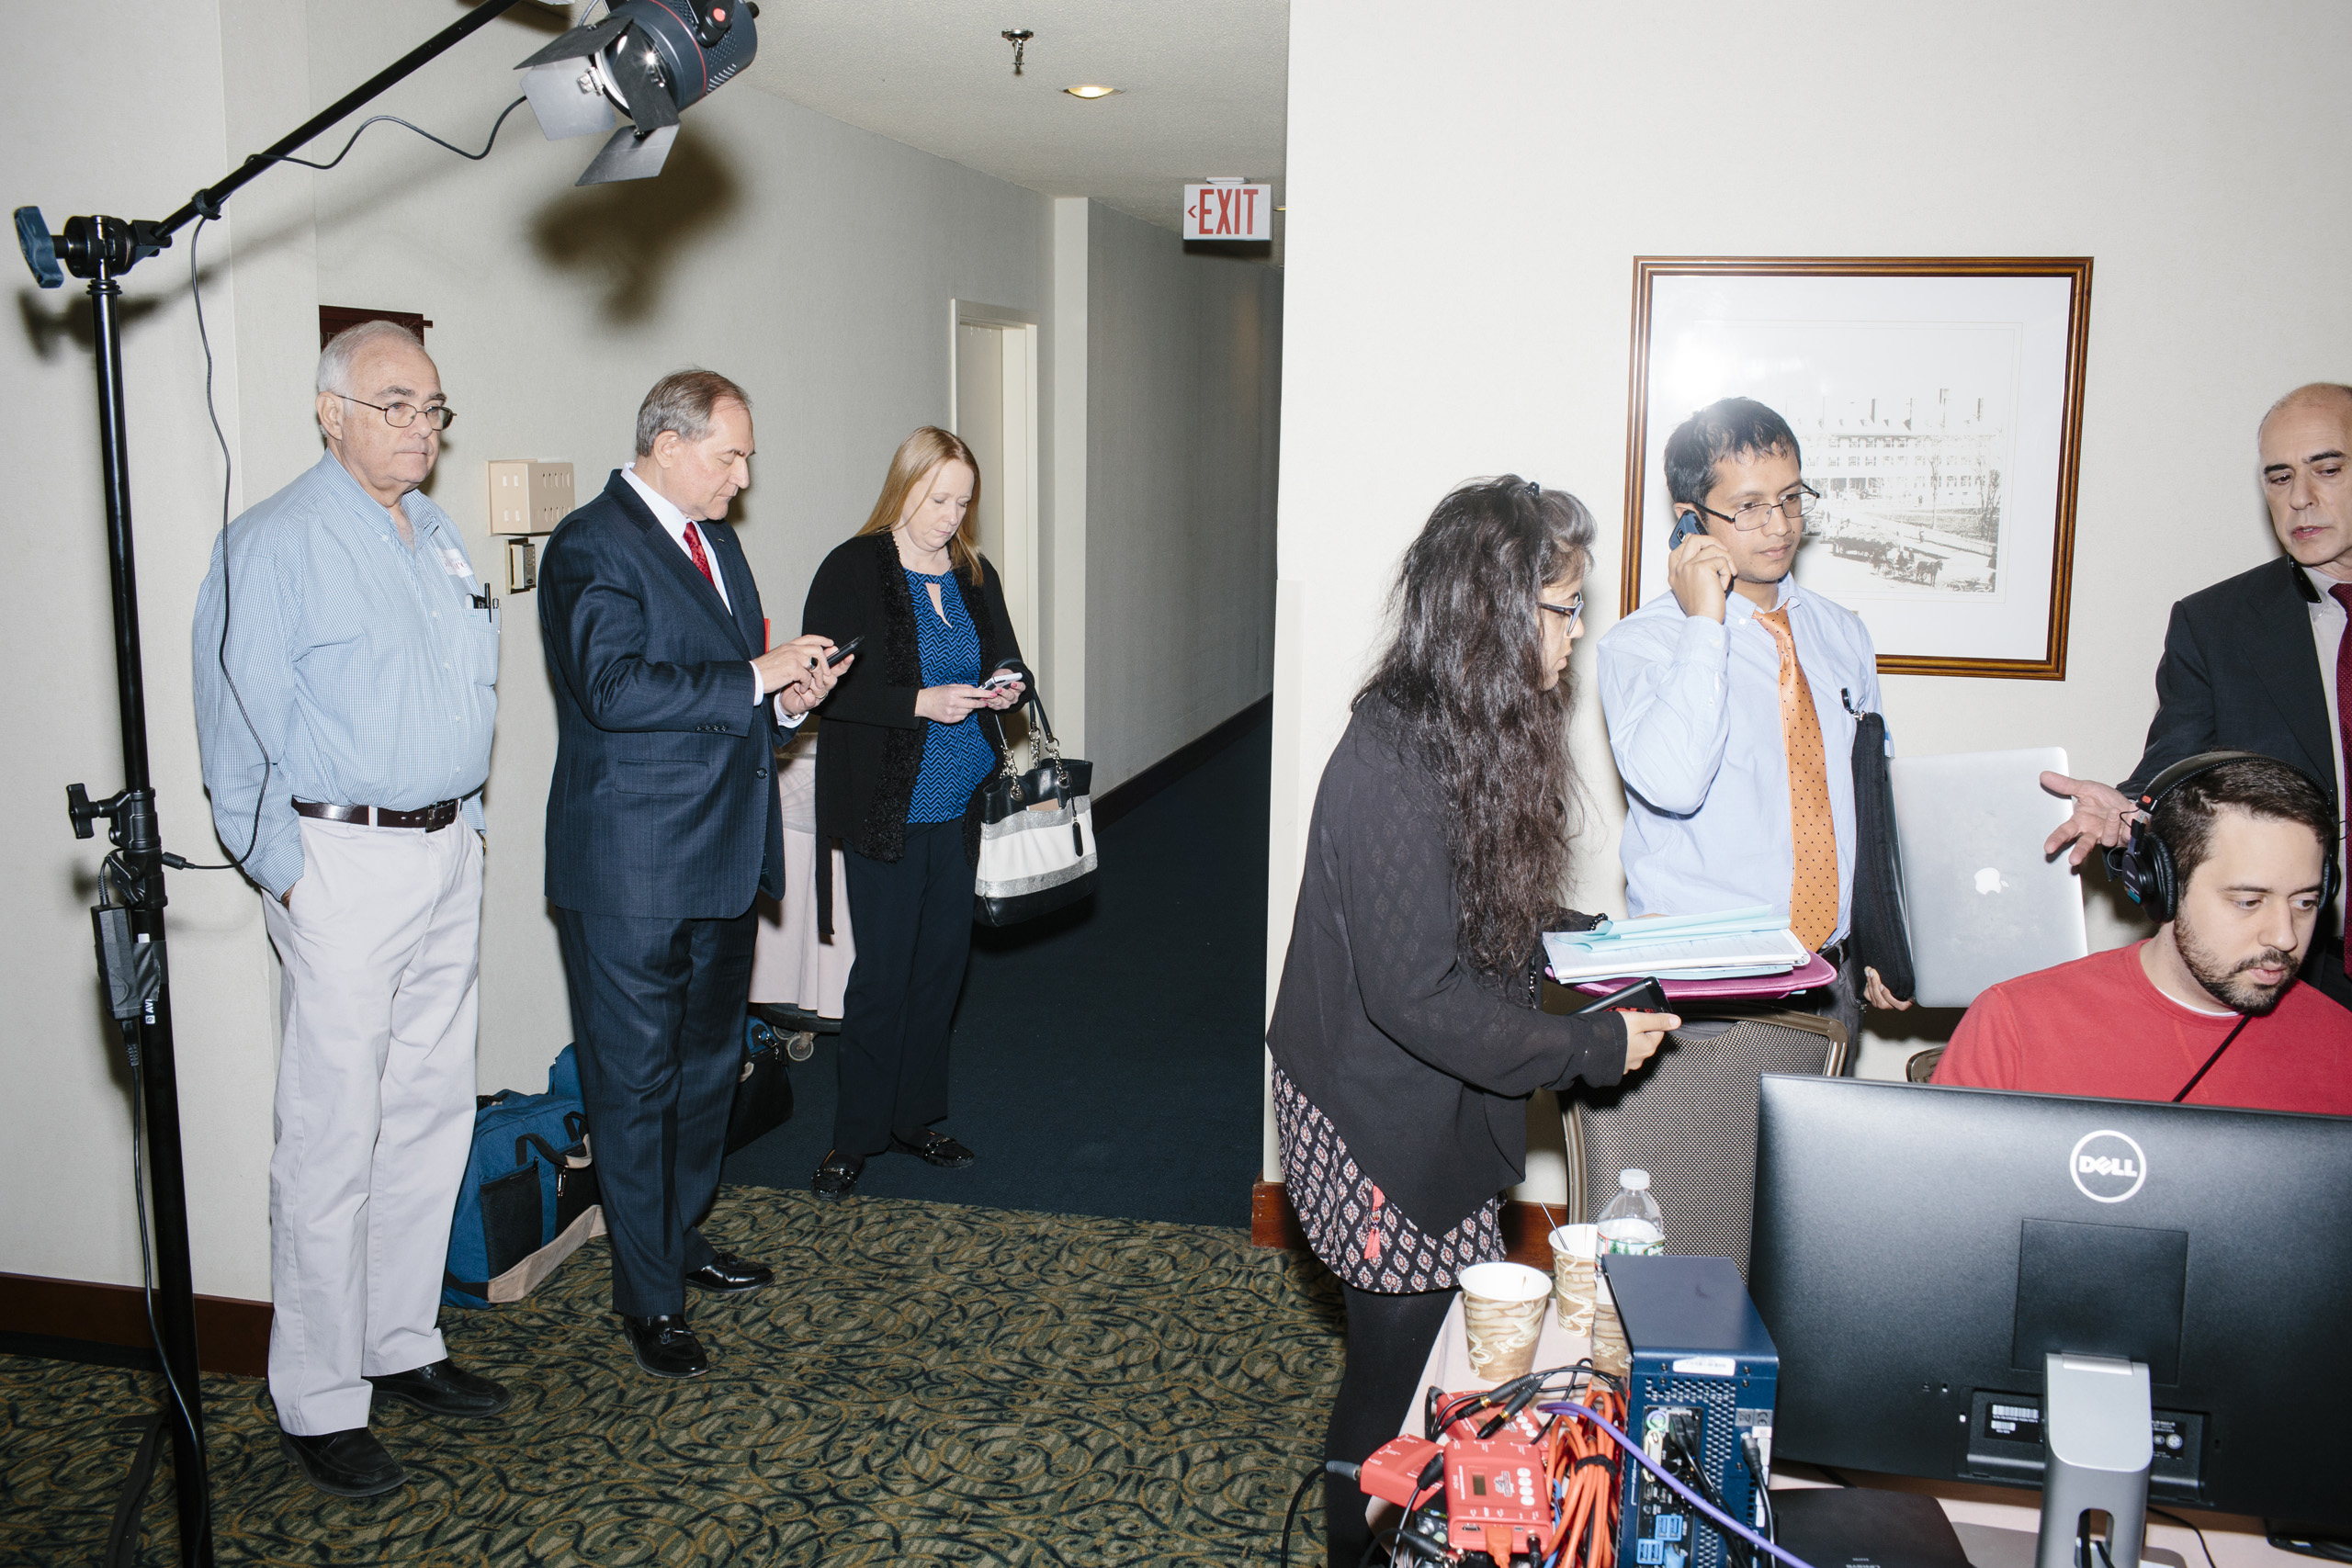 Former Virginia governor and Republican presidential candidate Jim Gilmore waits for an interview with TheRealNews.com at the Radisson Hotel's Radio Row in Manchester, New Hampshire, on Mon., Feb. 8, 2016. Also pictured is Gilmore's NH state director Anne Smith, of Bedford, NH, (blond, center) and Gilmore's brother-in-law, Lloyd Gatling, of Suffolk, Virginia (left). Many television and radio stations set up in the hotel for their coverage of the primary in the final days of the campaign.